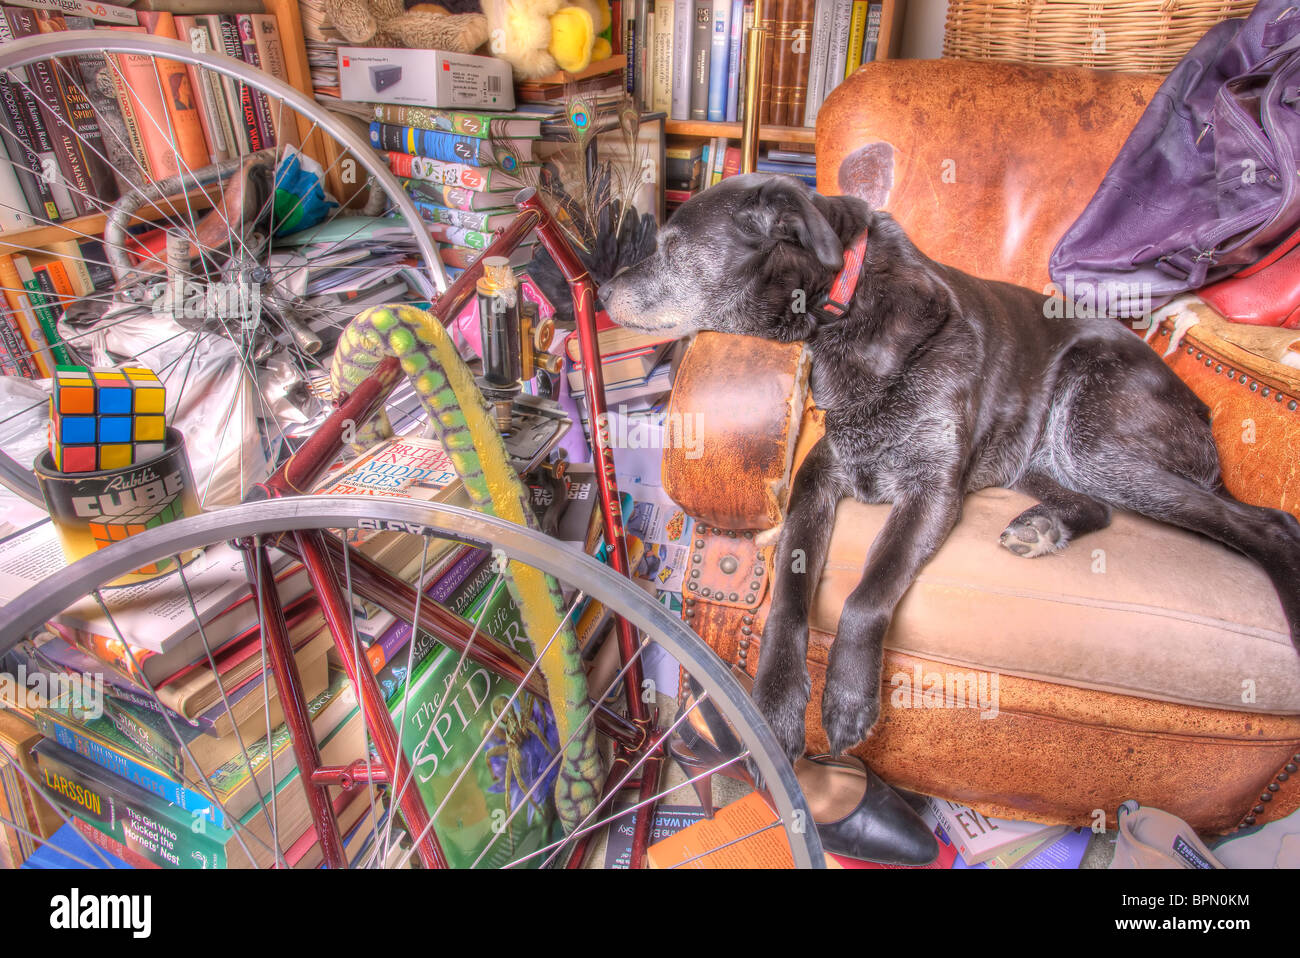 Lucy, the rescue dog, asleep in her favorite armchair. - Stock Image